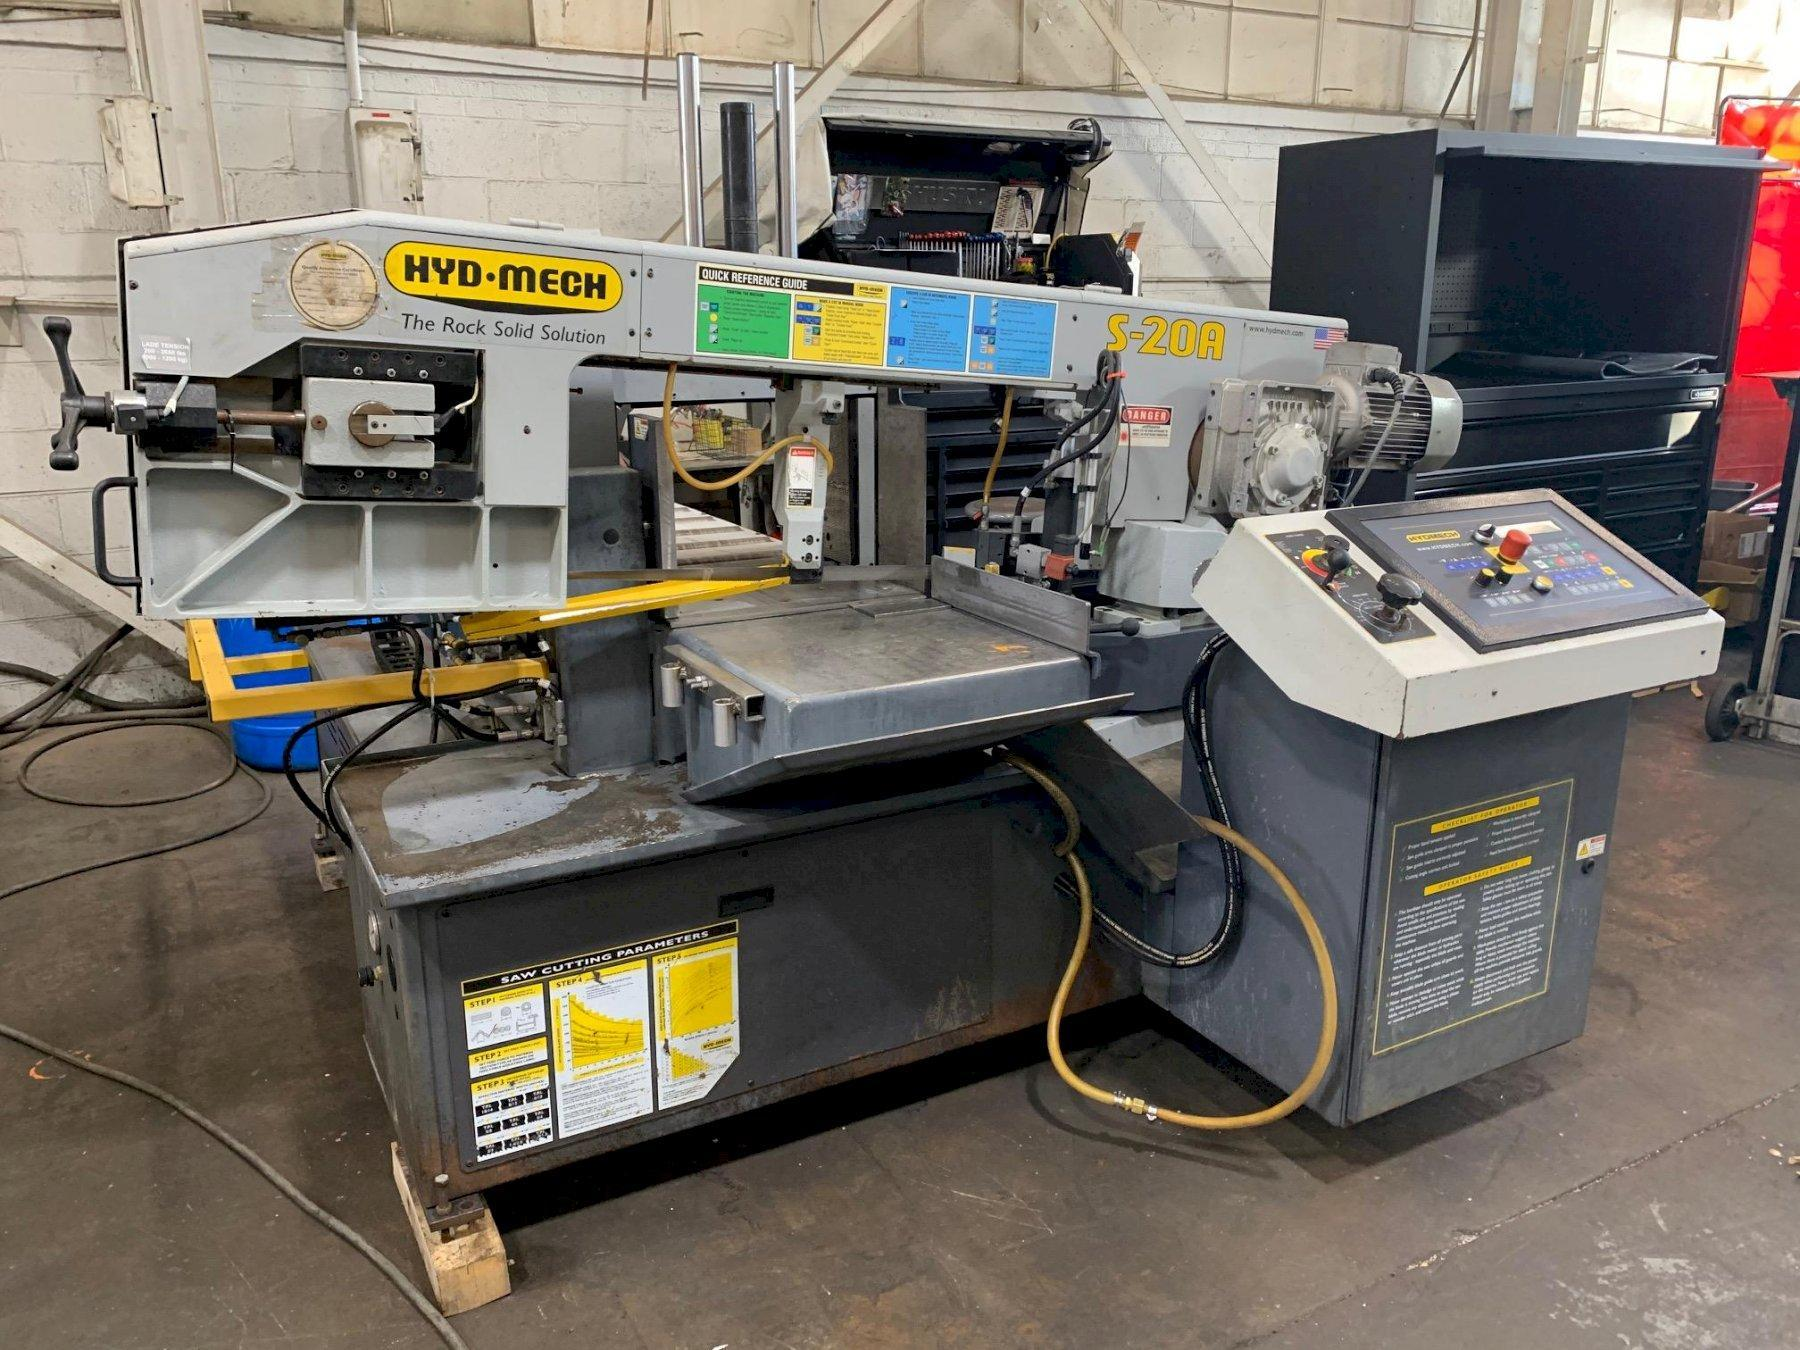 USED HYD-MECH MODEL S-20A SERIES III FULLY AUTOMATIC MITERING BANDSAW, STOCK# 10670, YEAR: 2011